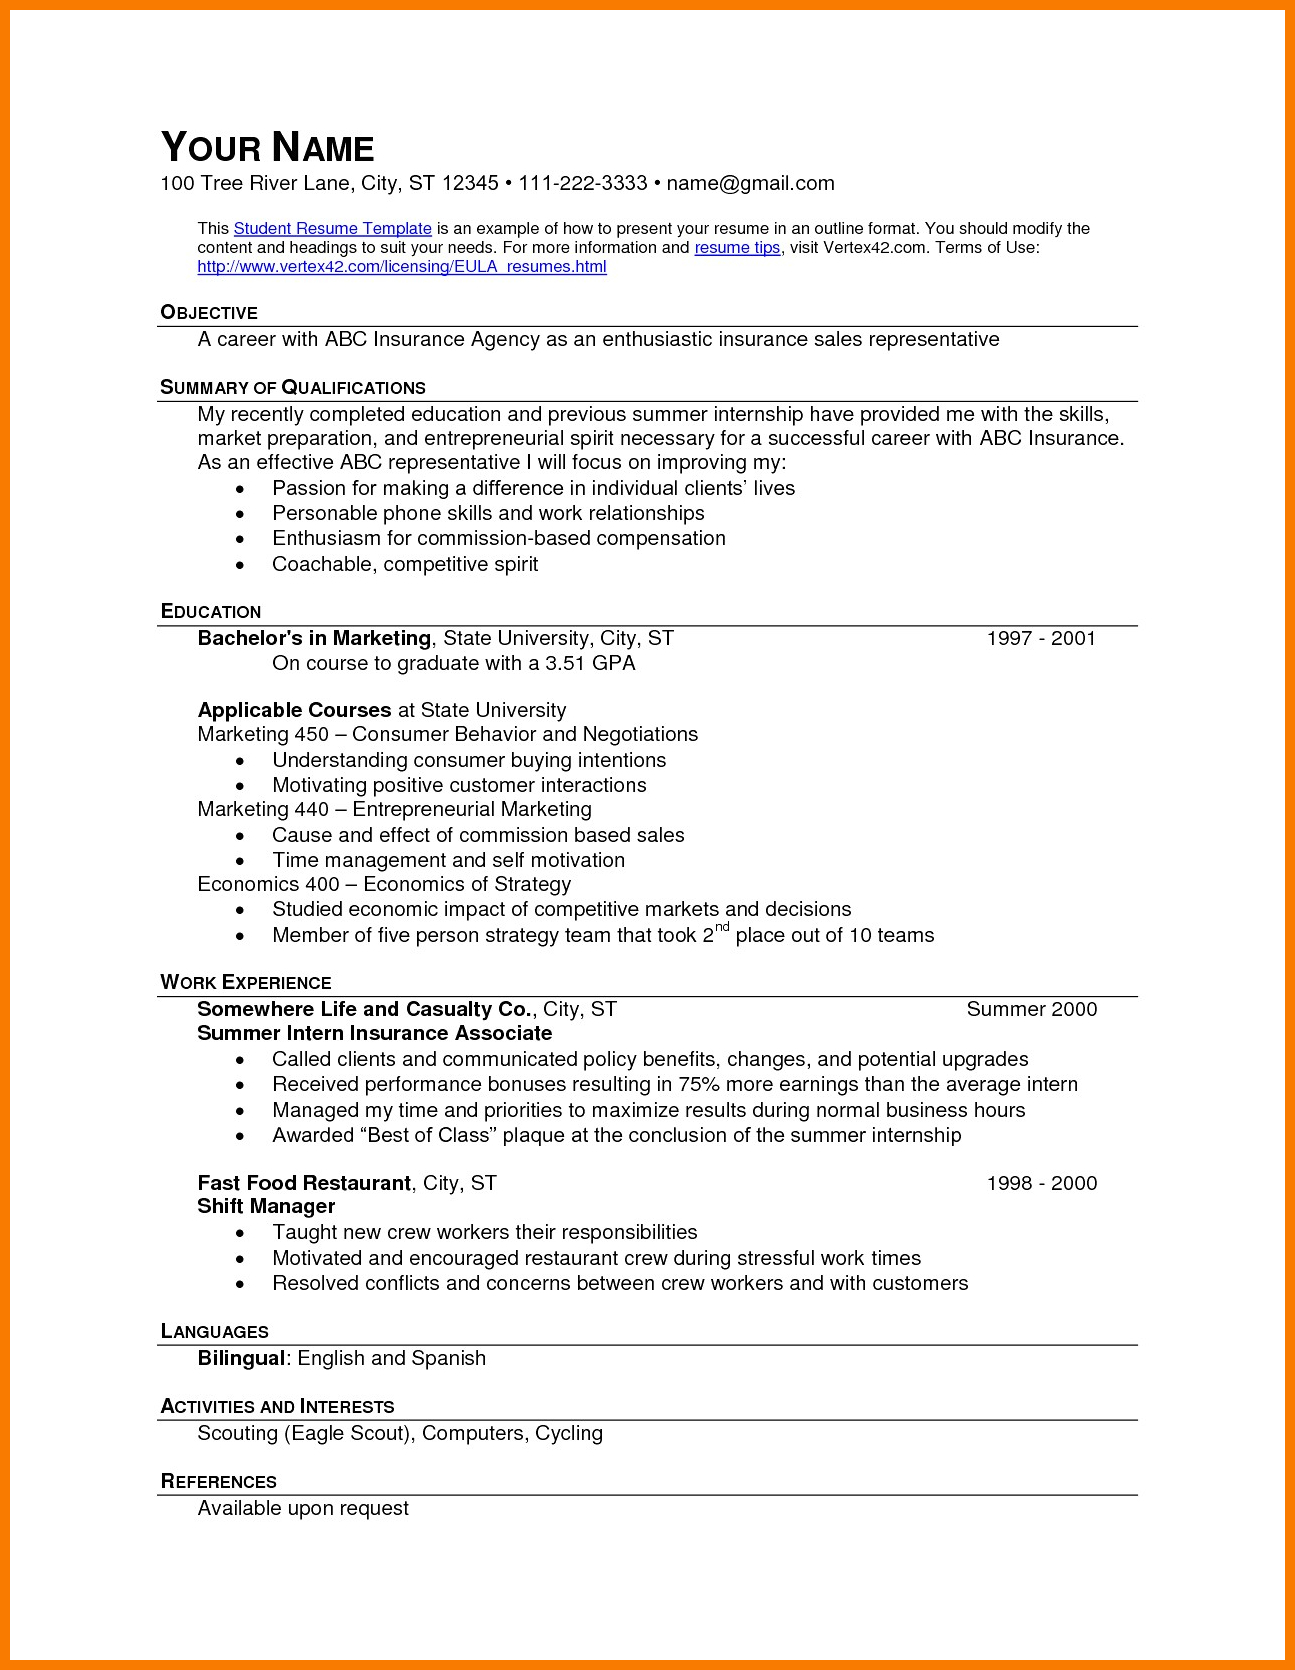 Fast Food Resume Objective - 10 11 Should I Put Fast Food On My Resume